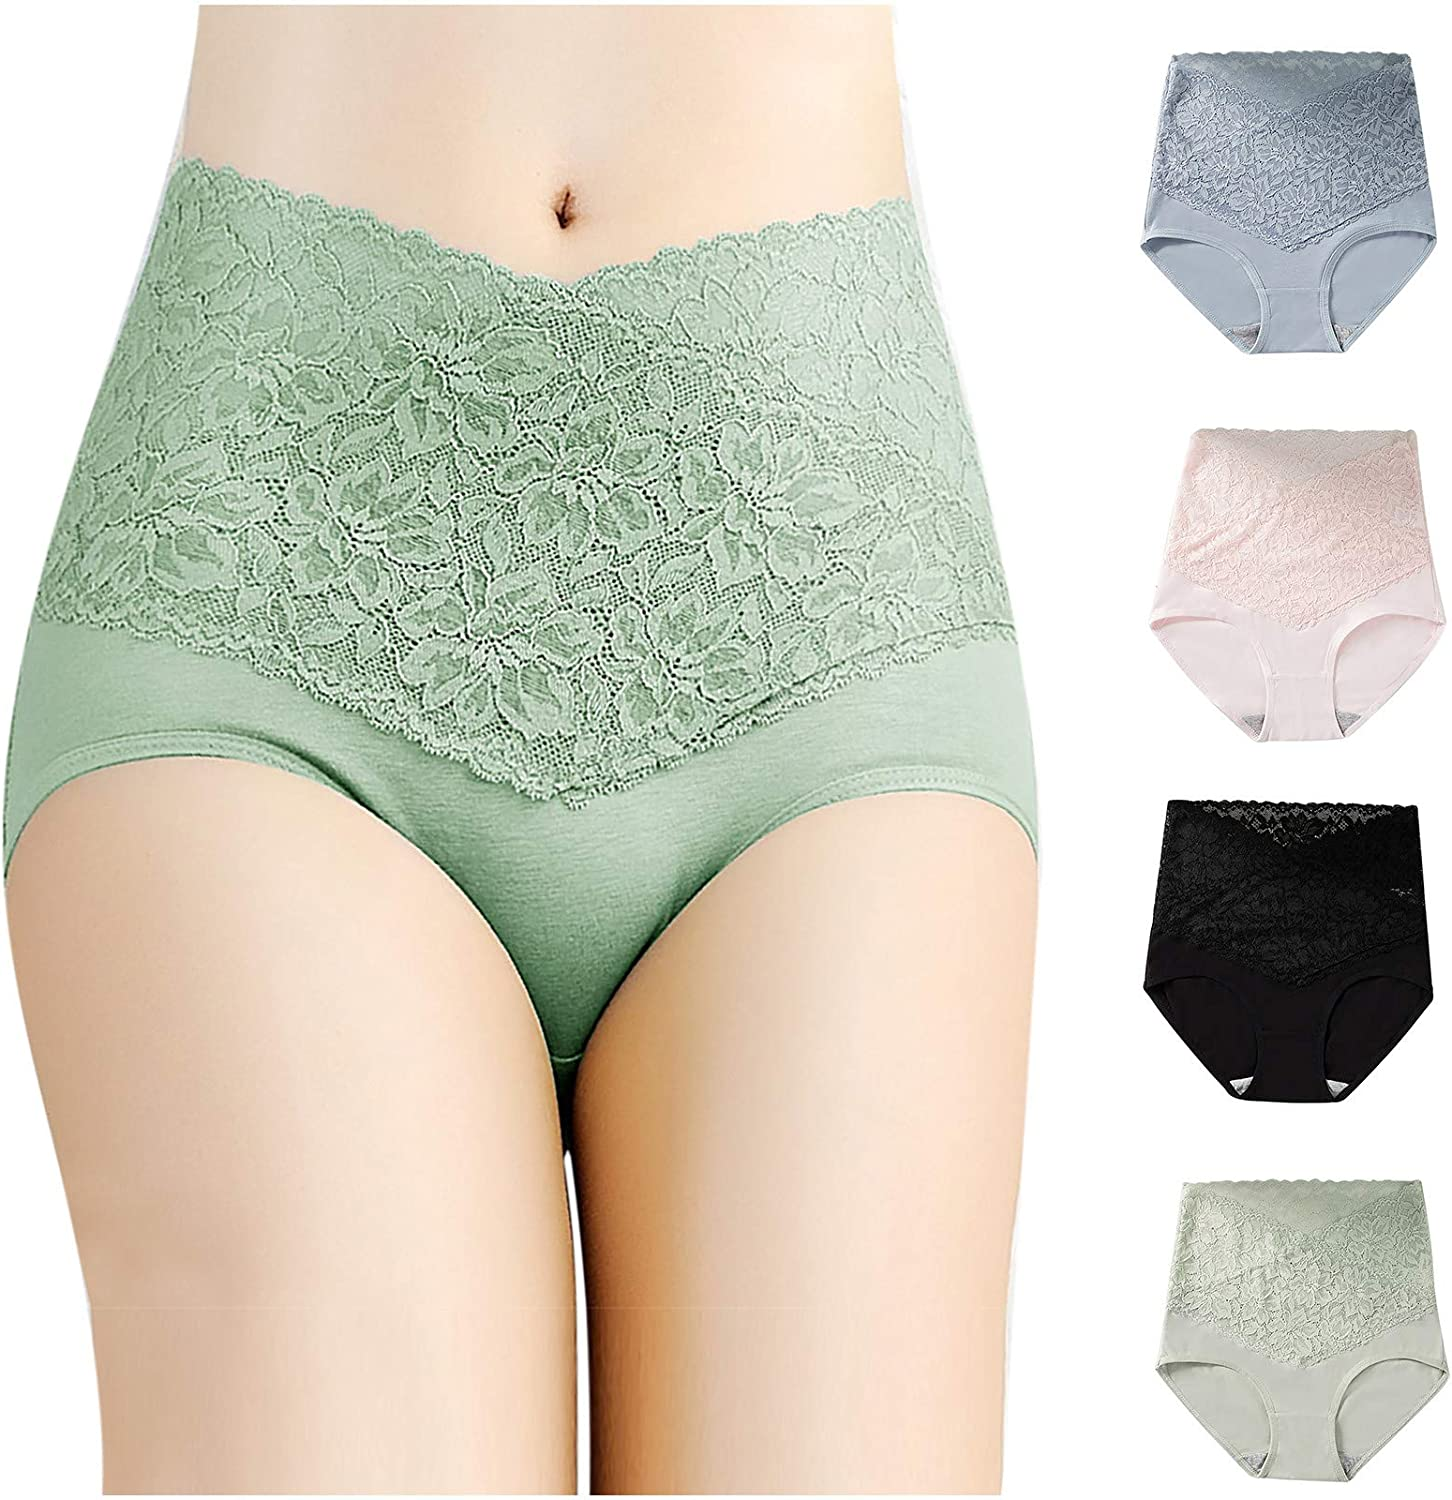 A2A San Francisco Mall Underwear 2021 new for Women High Waist Coverage Full Top Muffin No B